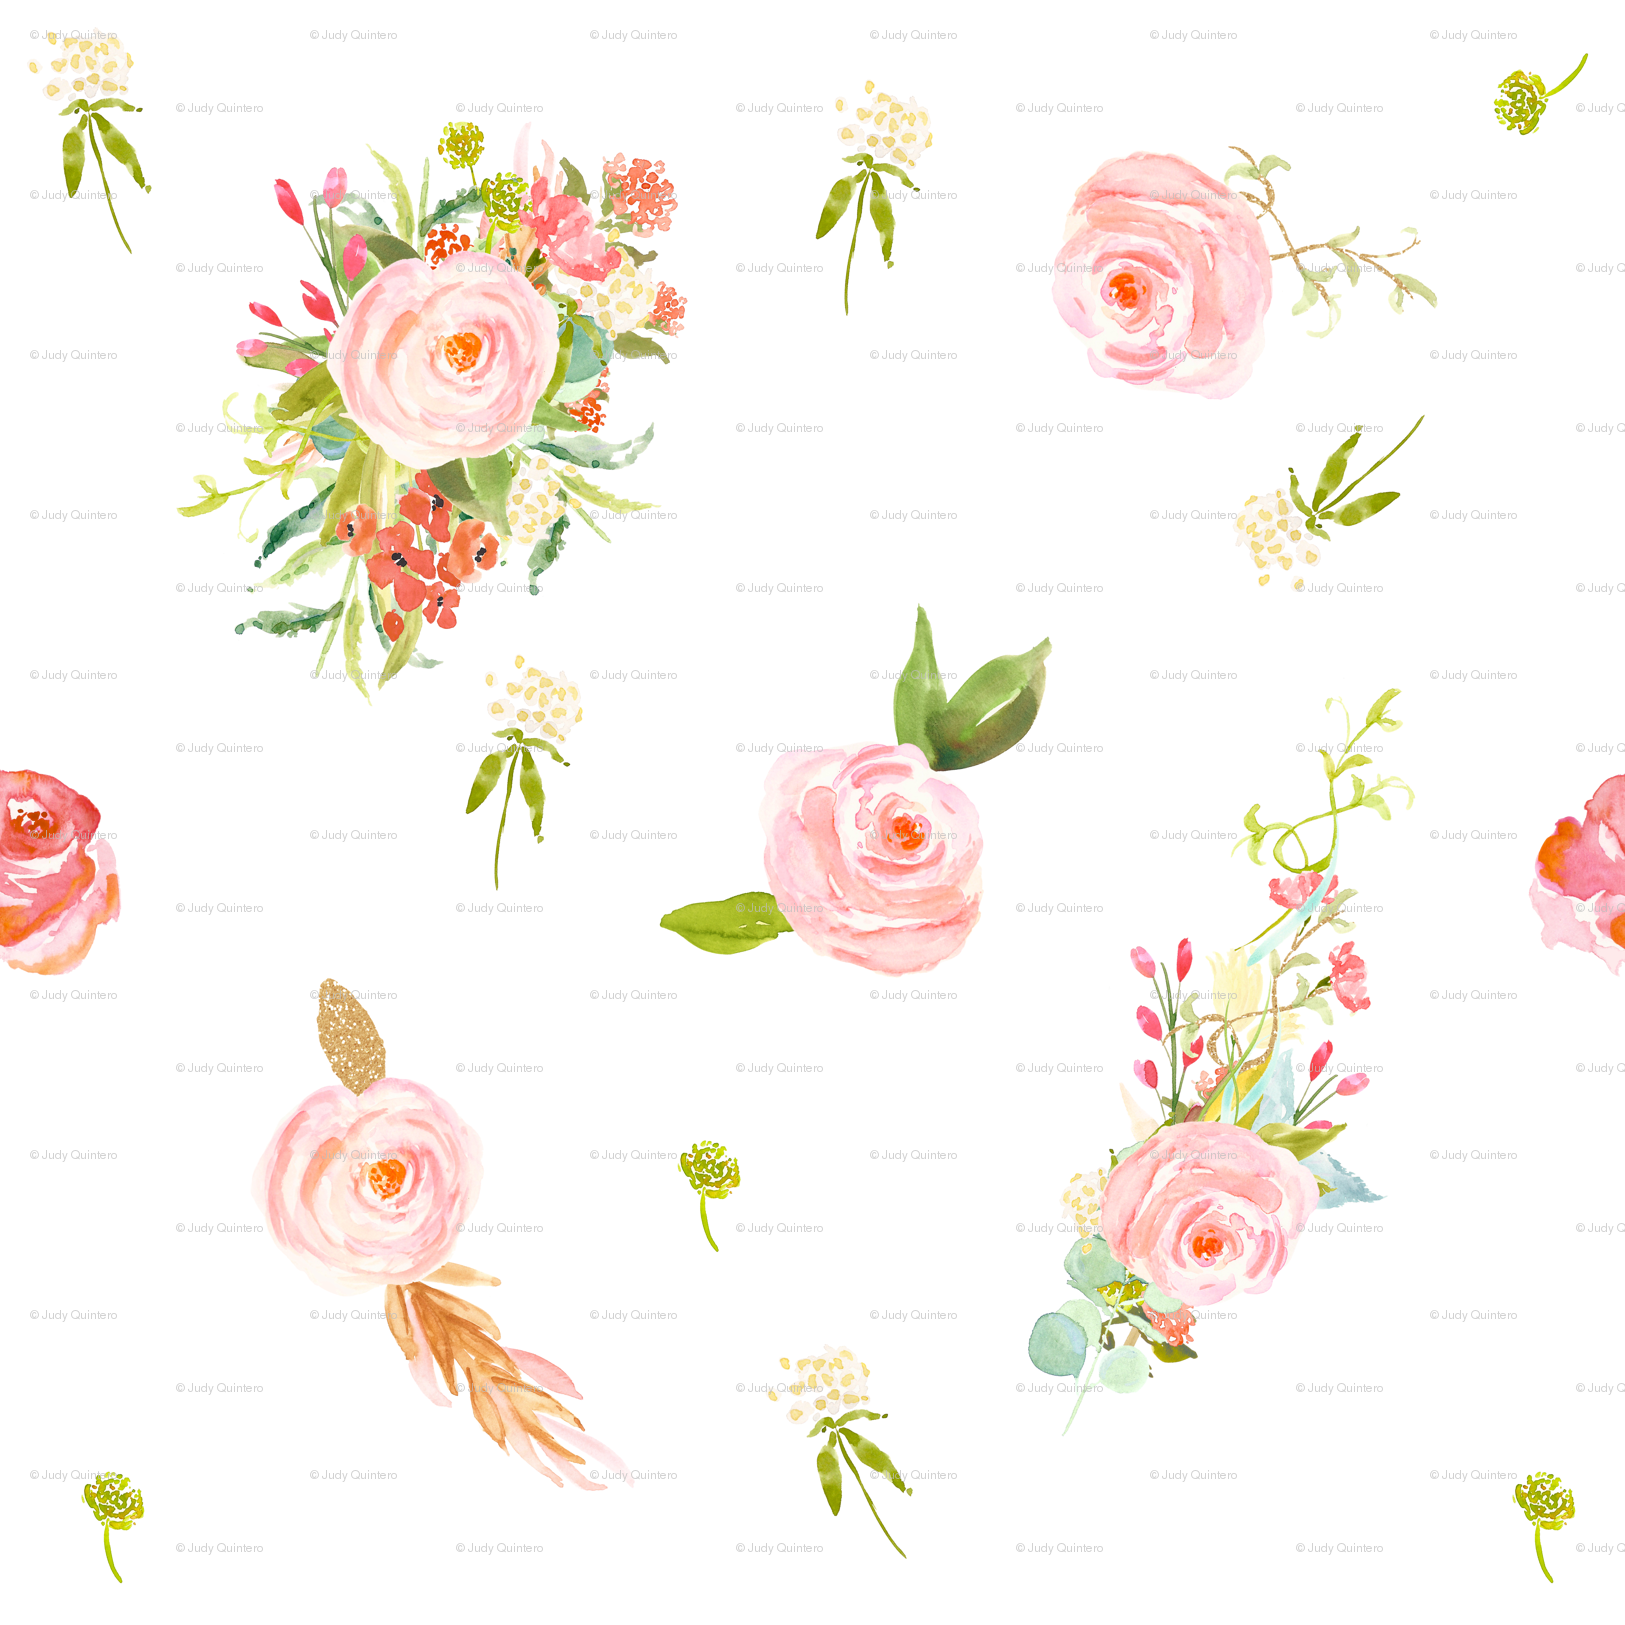 sweet flowers wallpaper - shopcabin - spoonflower